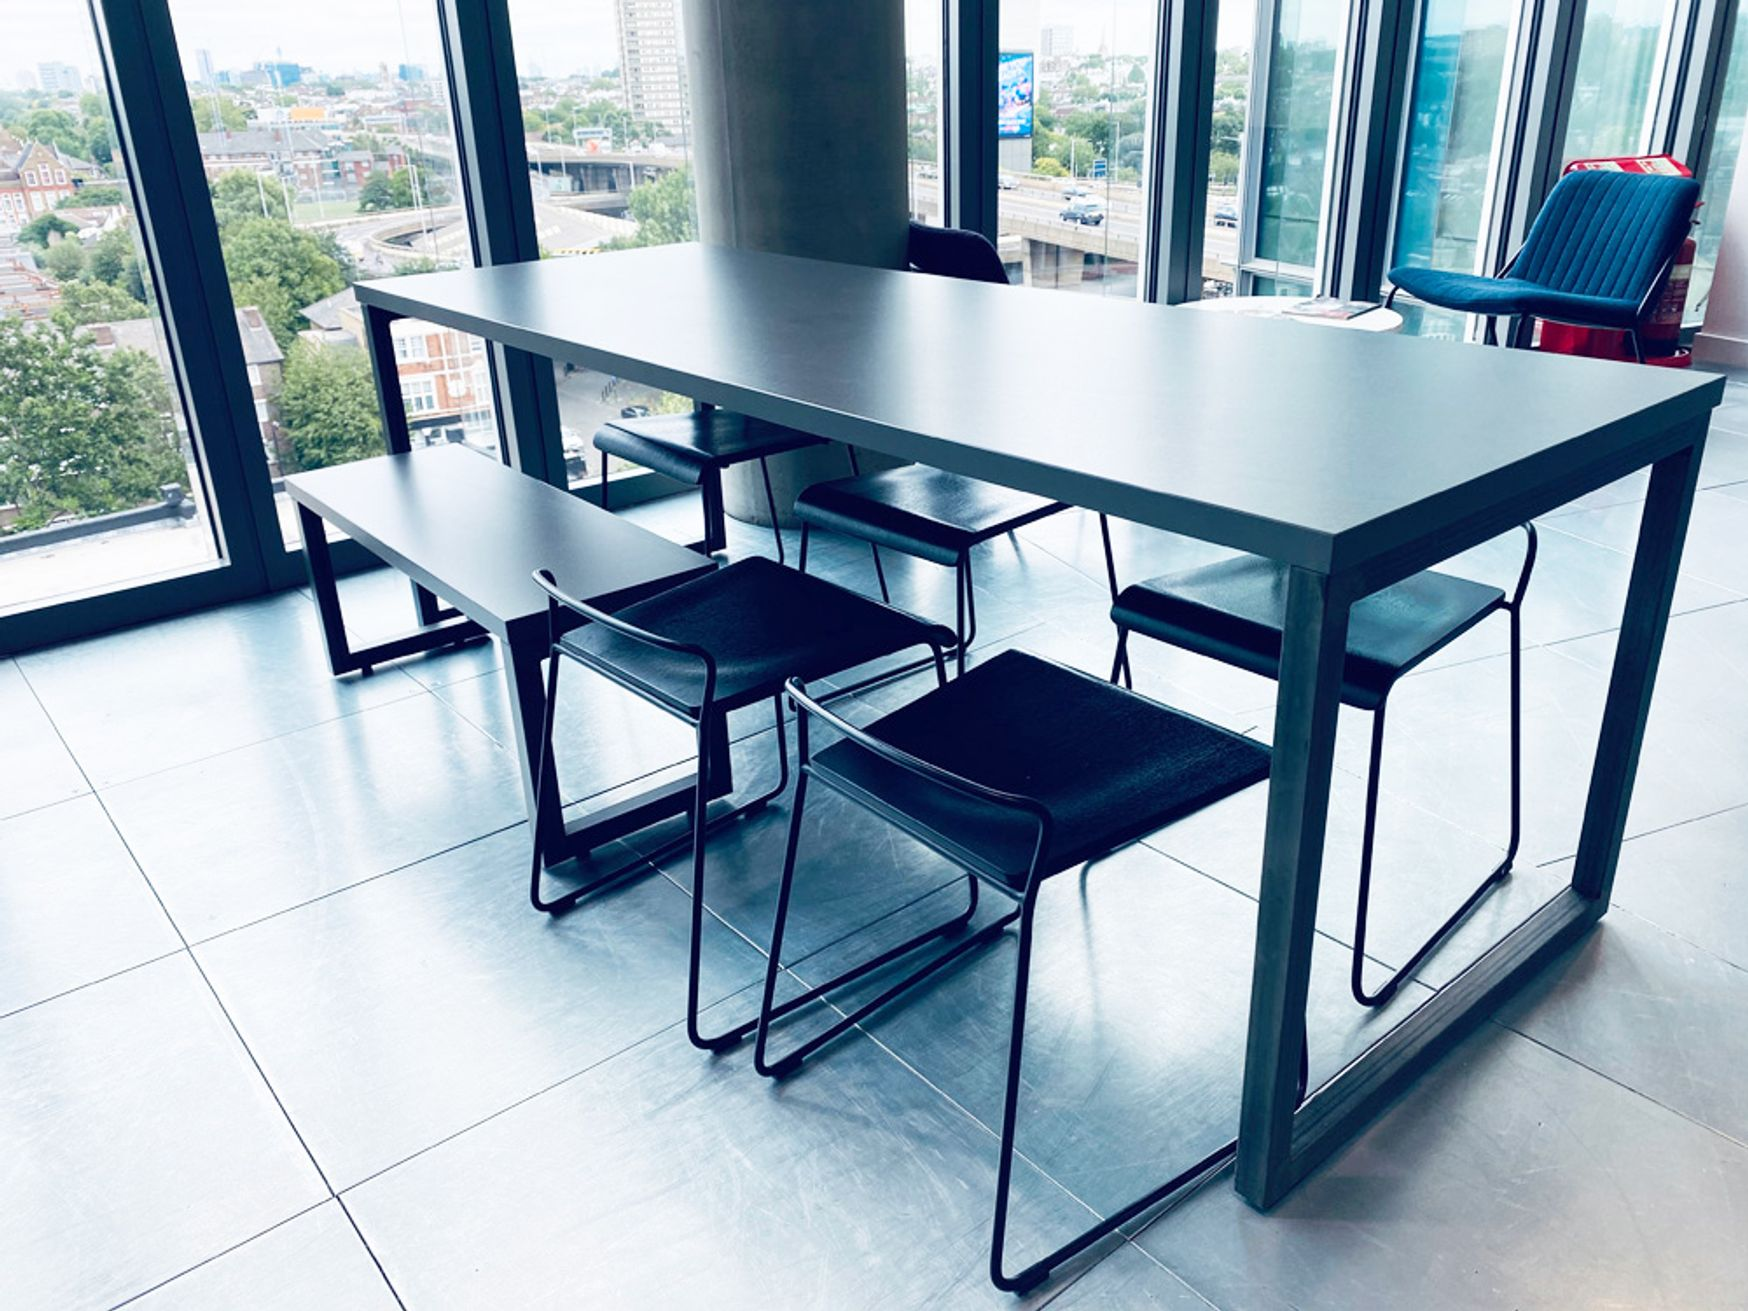 Urban style used 'Mix' cafe tables with grey tops and raw steel legs